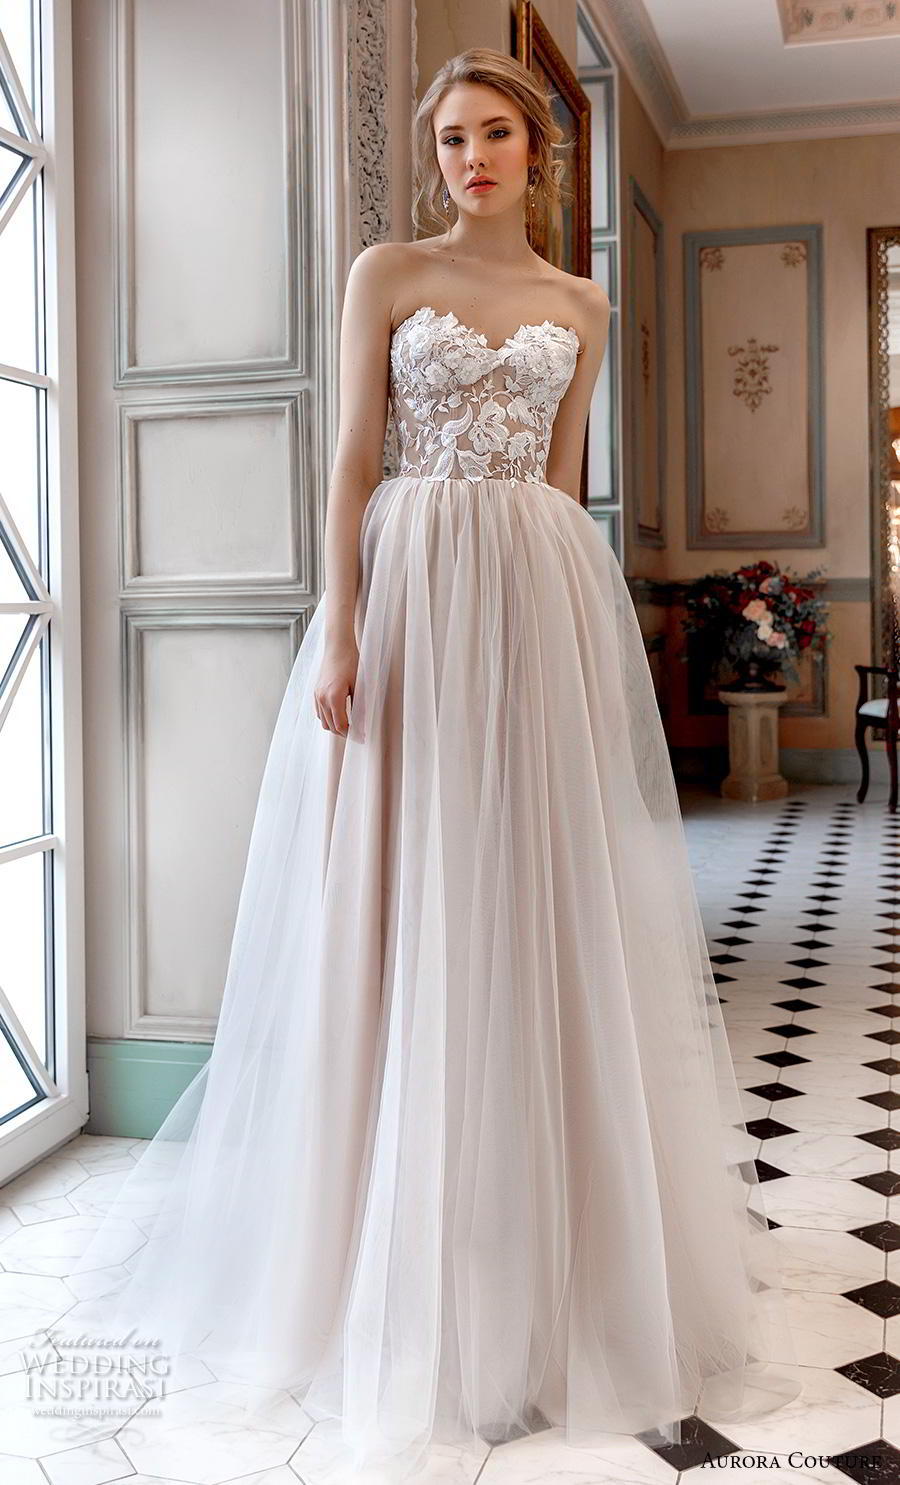 aurora couture 2019 bridal strapless sweetheart neckline heavily embellished bodice romantic ball gown a  line wedding dress (17) mv